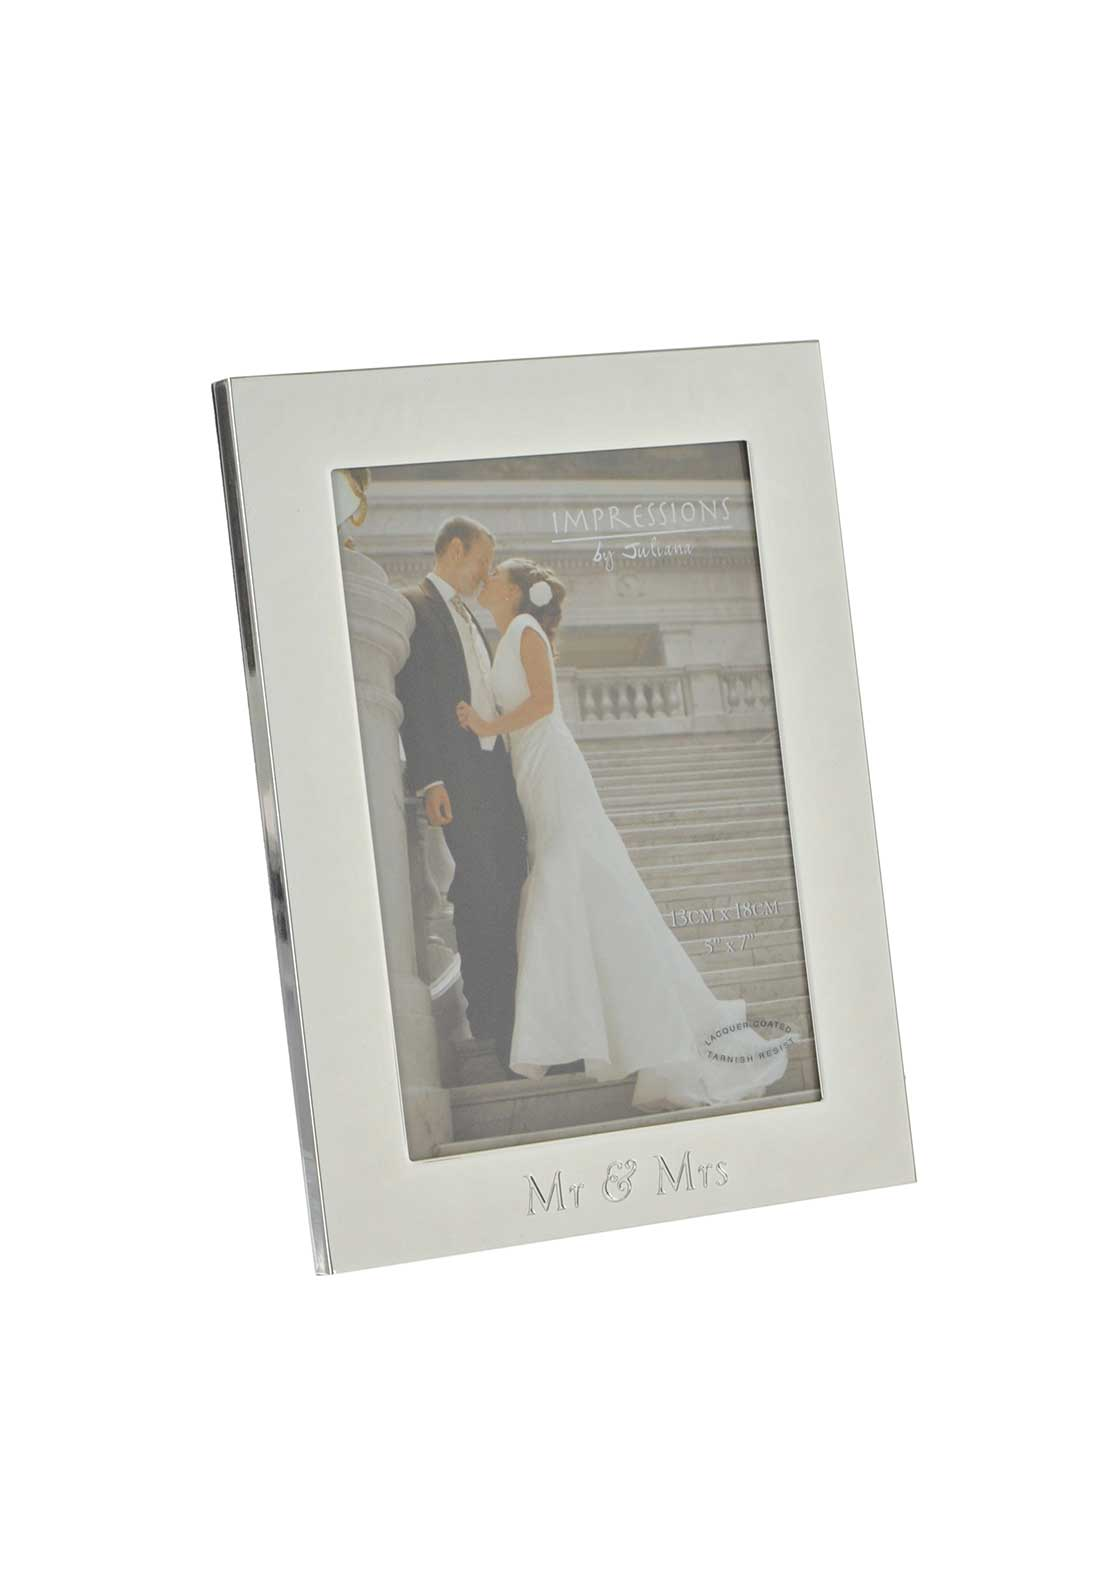 "Impressions by Juliana Mr & Mrs Silver Plated Photo Frame, 5"" x 7"""